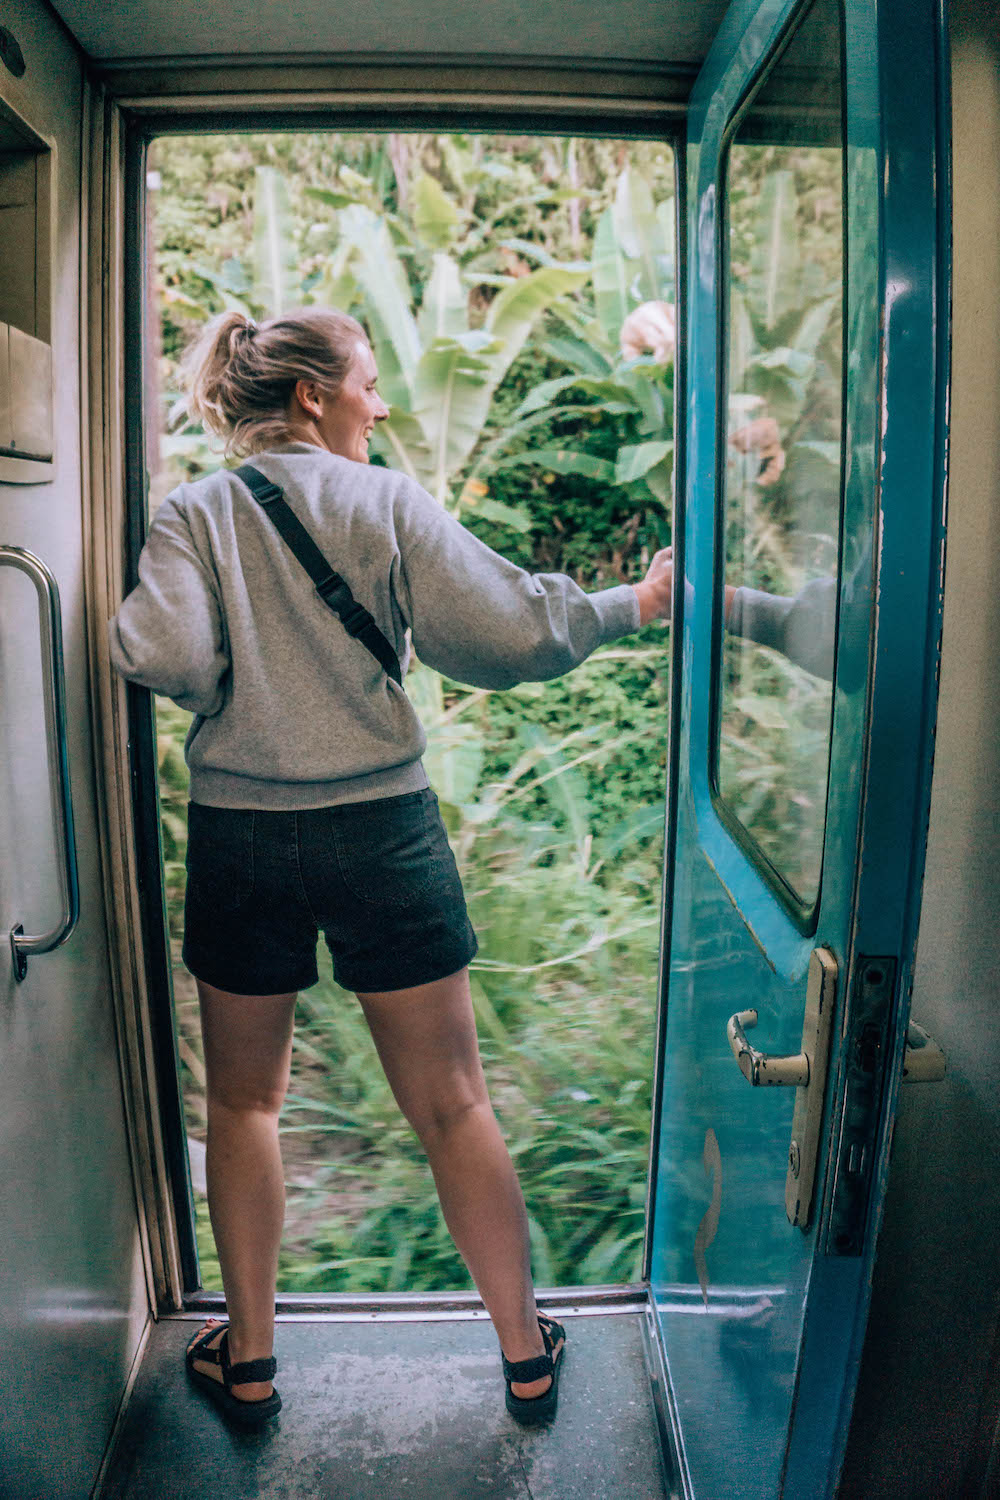 One of the many friends we made on our journey, all crammed in the doorway compartment. We took turns sitting in the doorway, and helped each other snap those epic Ella Train photos!